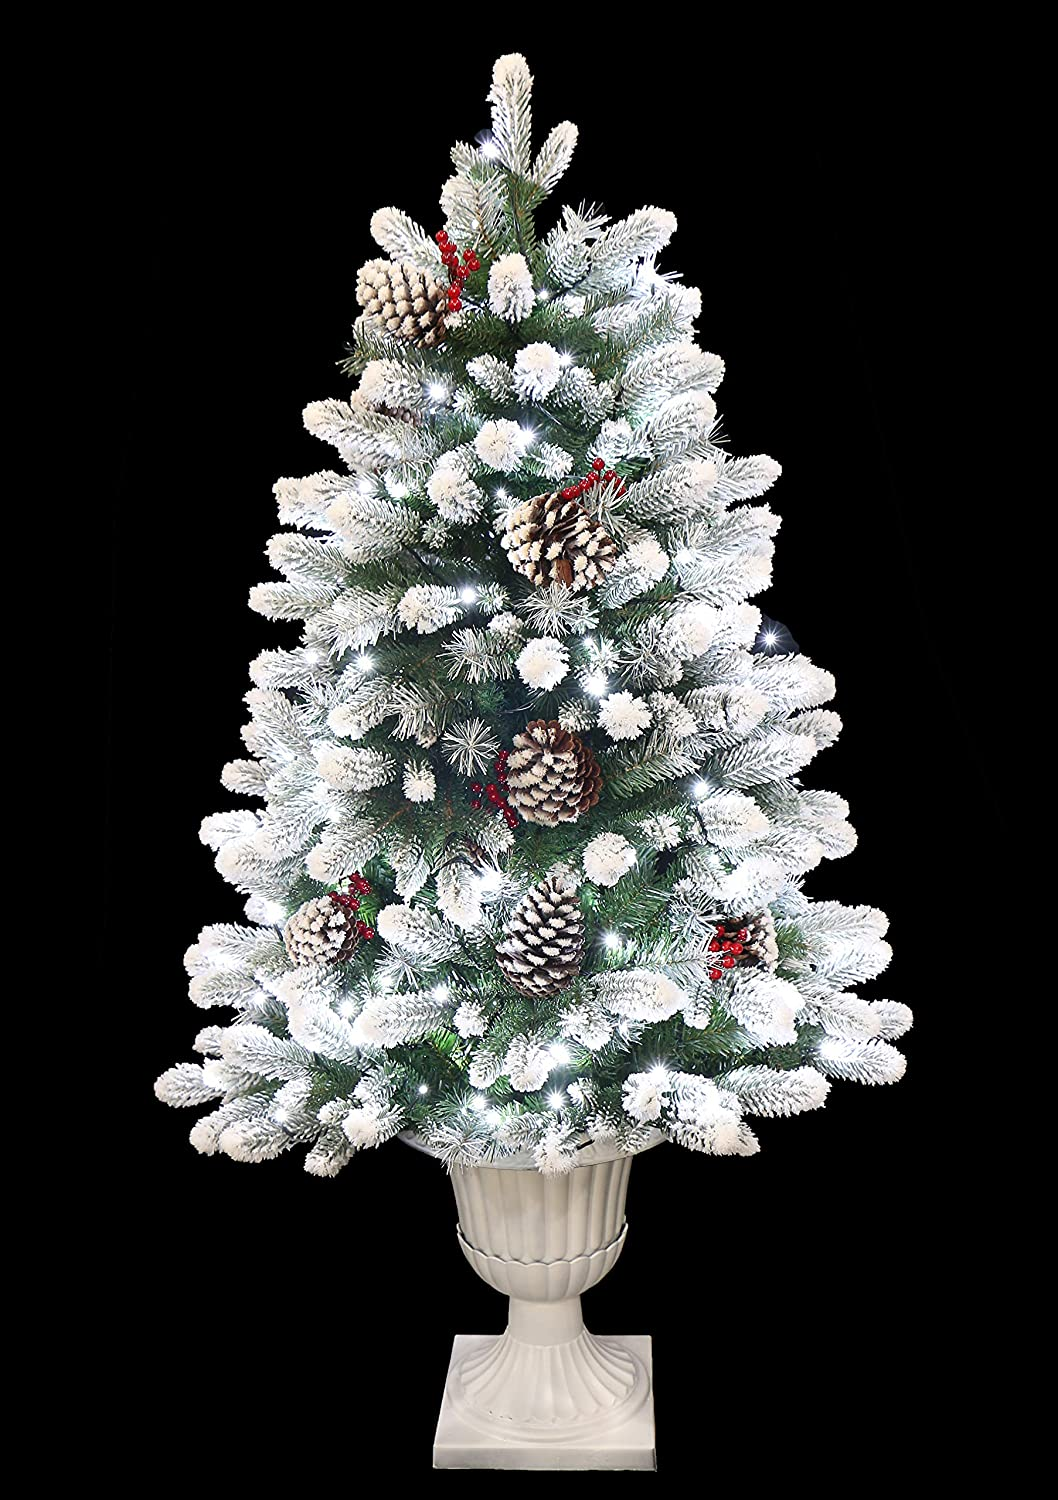 Holiday Stuff 4 Potted Frosted Winter Spruce Flocked Christmas Tree Pre Lit With Cool White Led Lights 4 Ft Home Kitchen Amazon Com